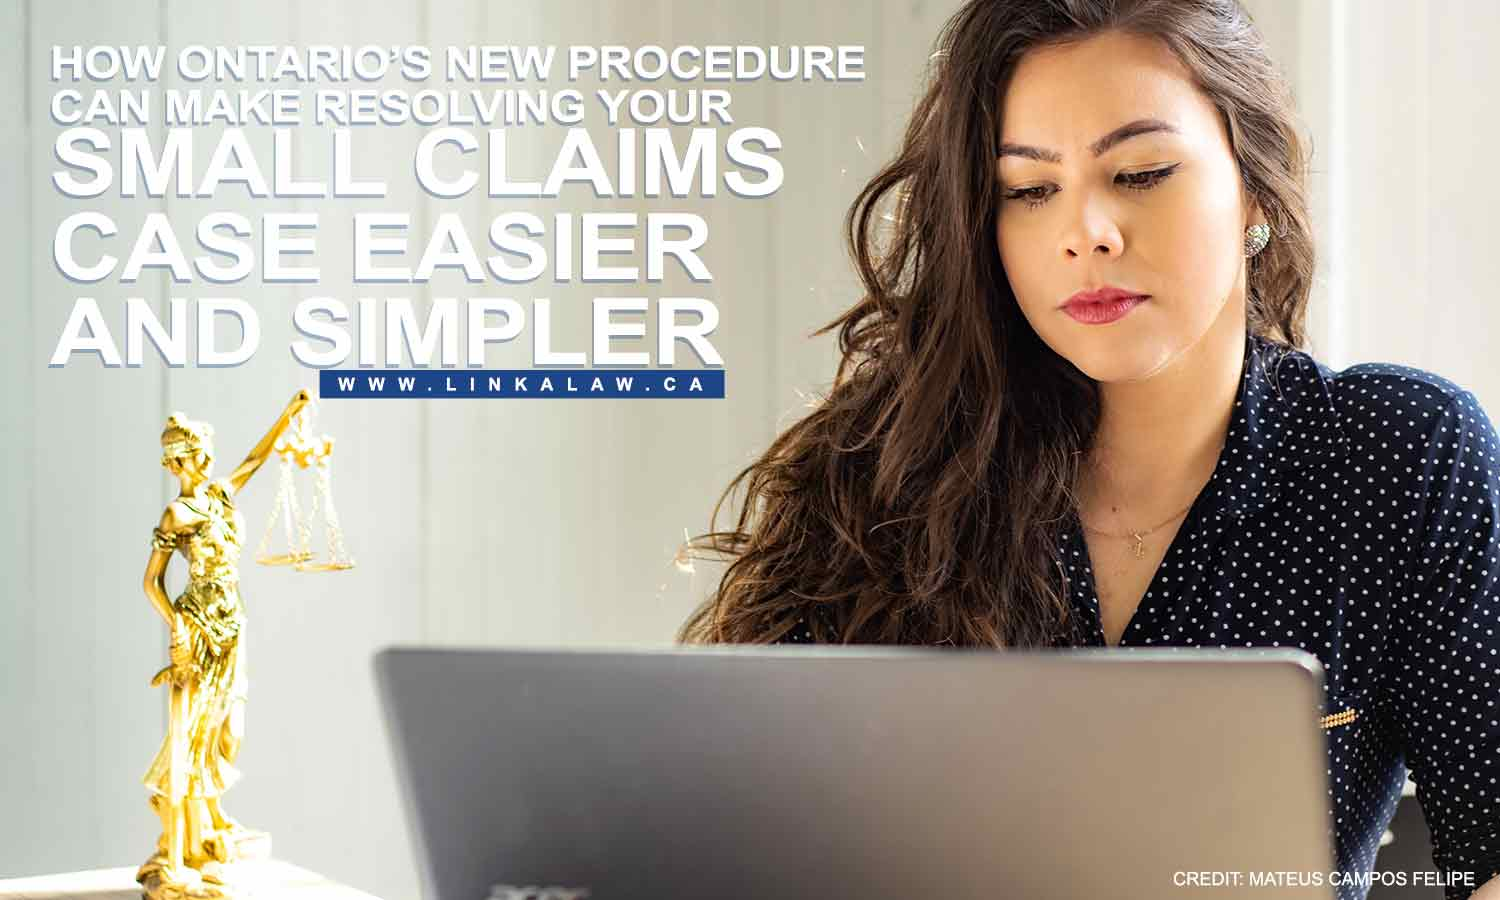 How Ontario's New Procedure Can Make Resolving Your Small Claims Case Easier and Simpler